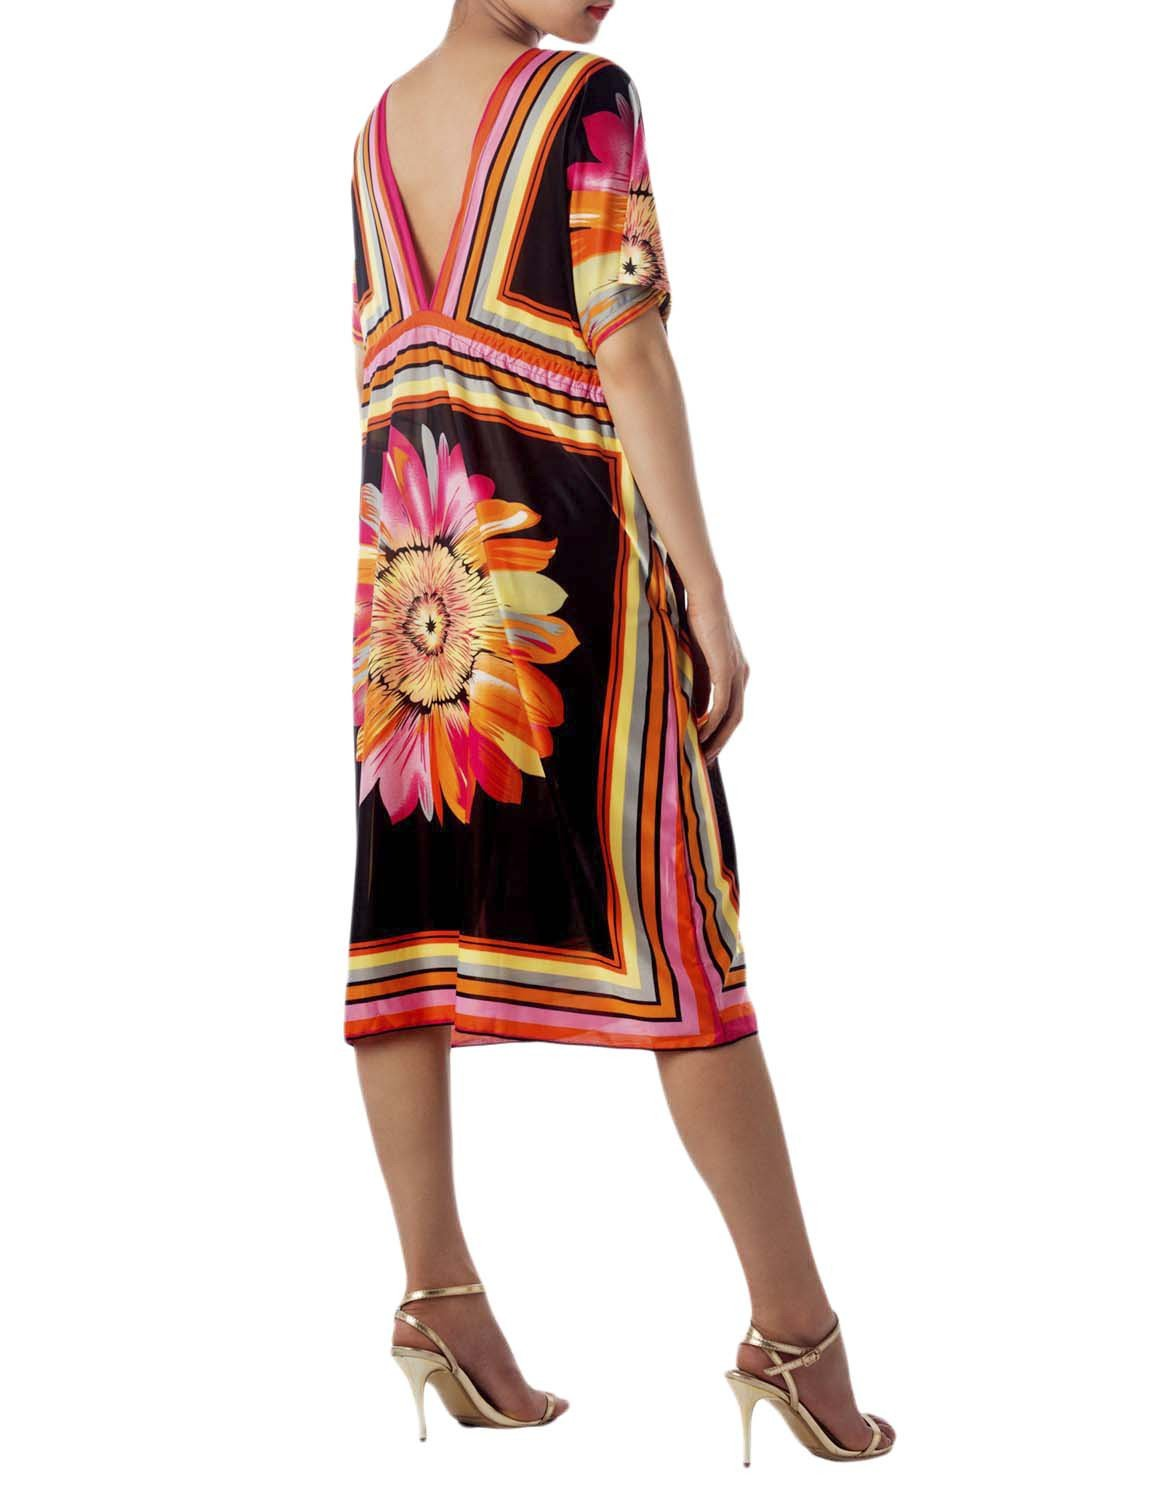 Women's Floral Bat Sleeve Casual Dress Loose Relaxed Sack Midi Tunic Dress, Size: XL, Orange